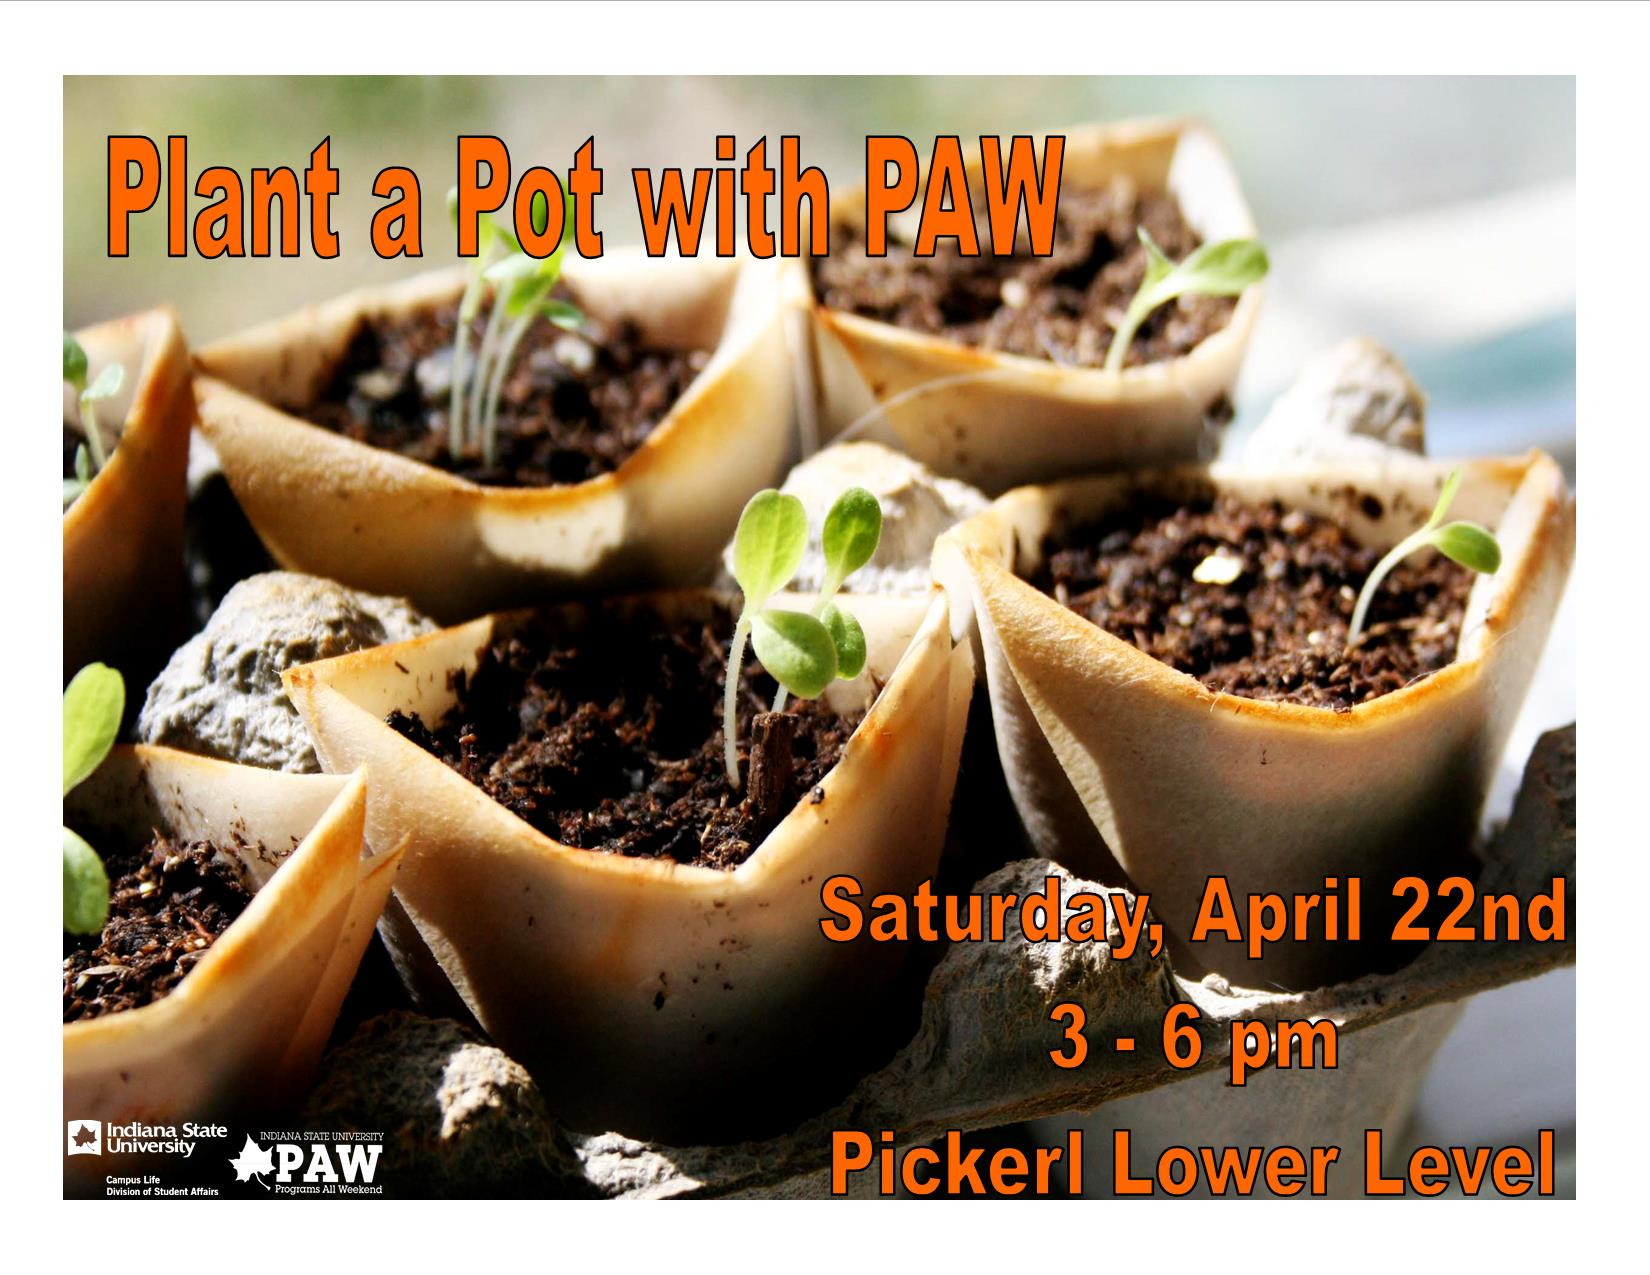 Plant a pot with PAW